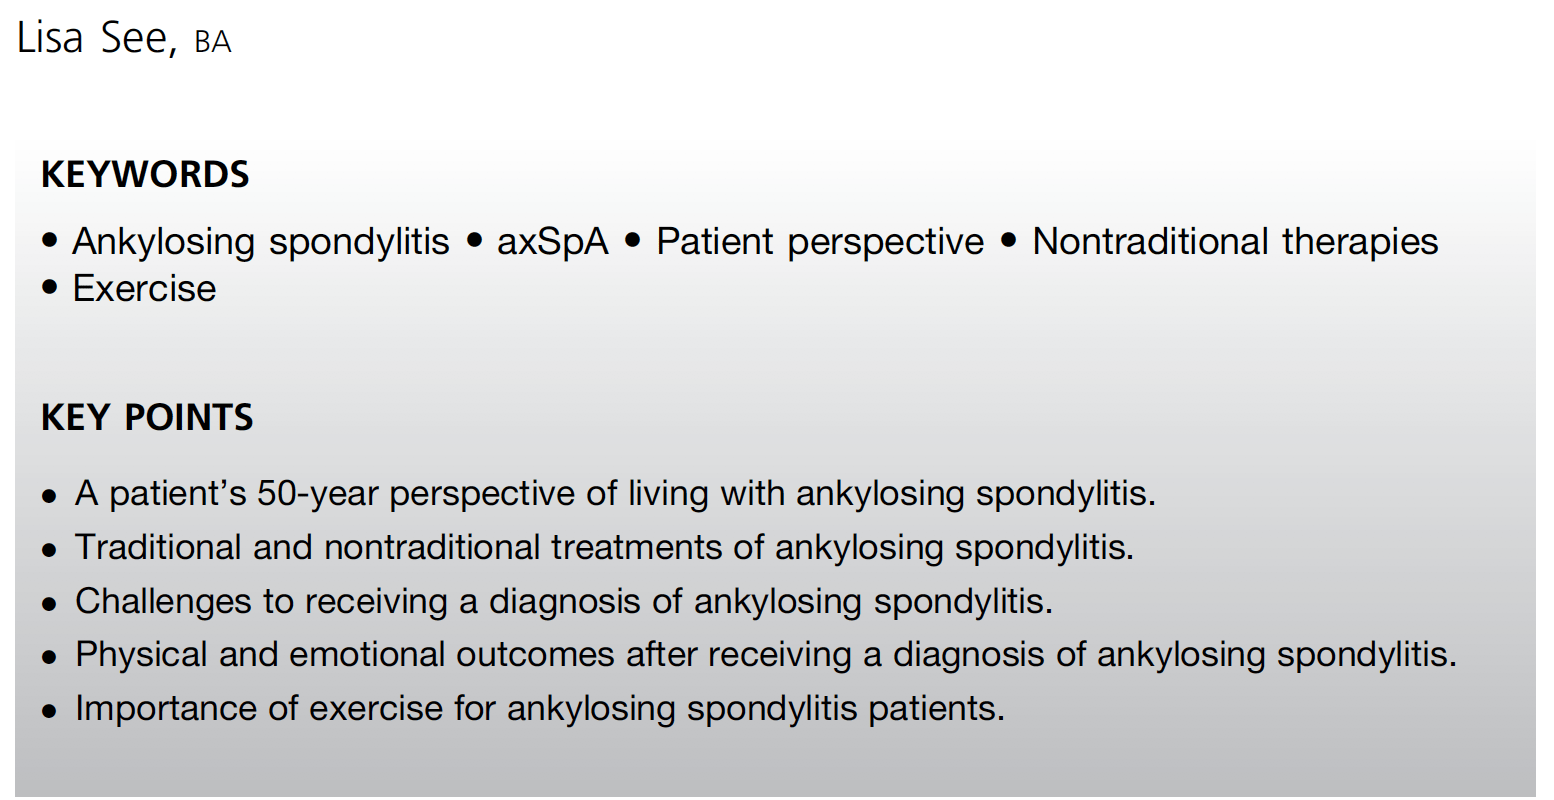 The Patient's Perspective on the Burden of Disease in Ankylosing Spondylitis by Lisa See